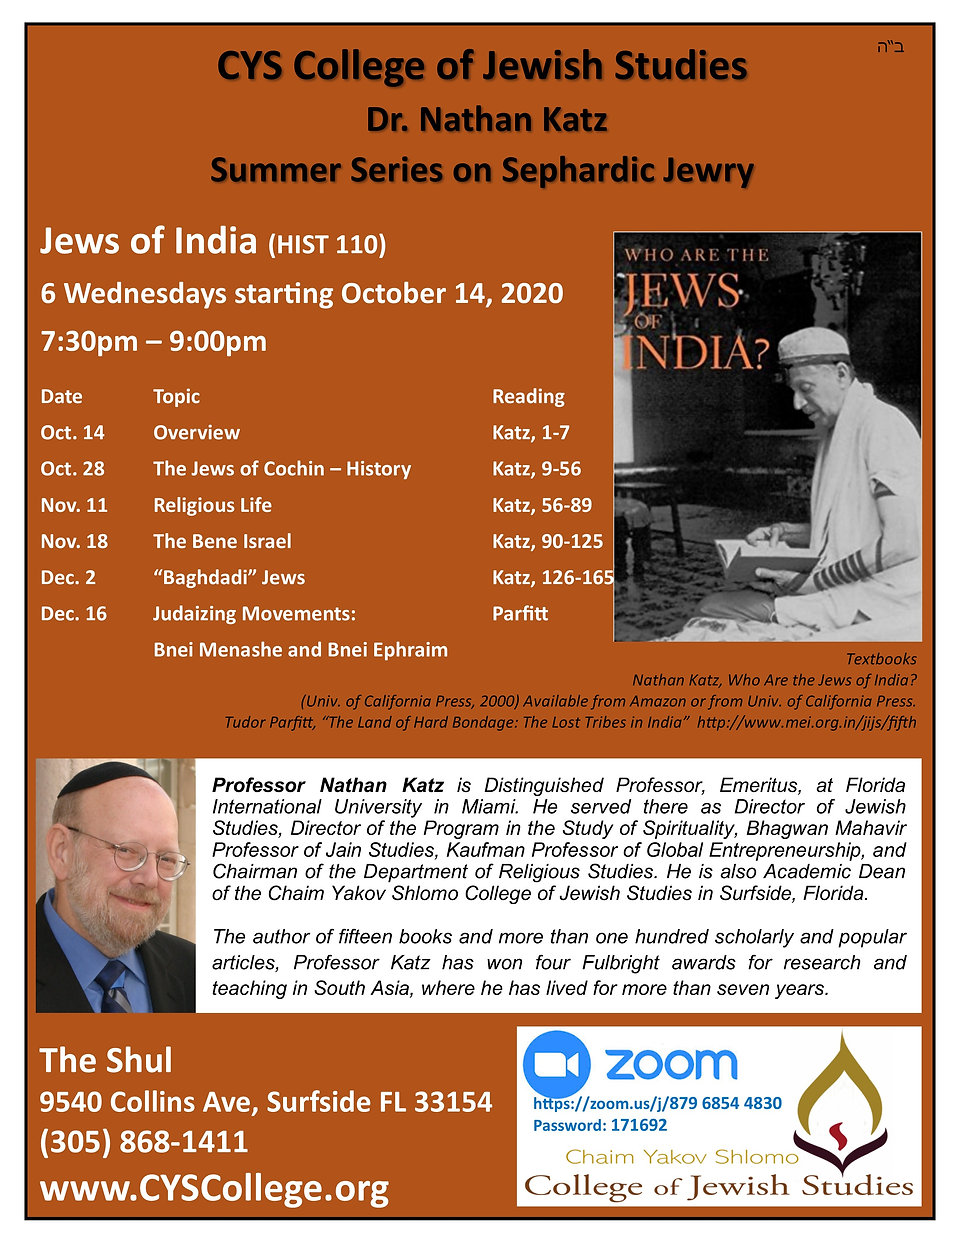 CYS Flyer - HIST 110 - 2020 - Jews of In